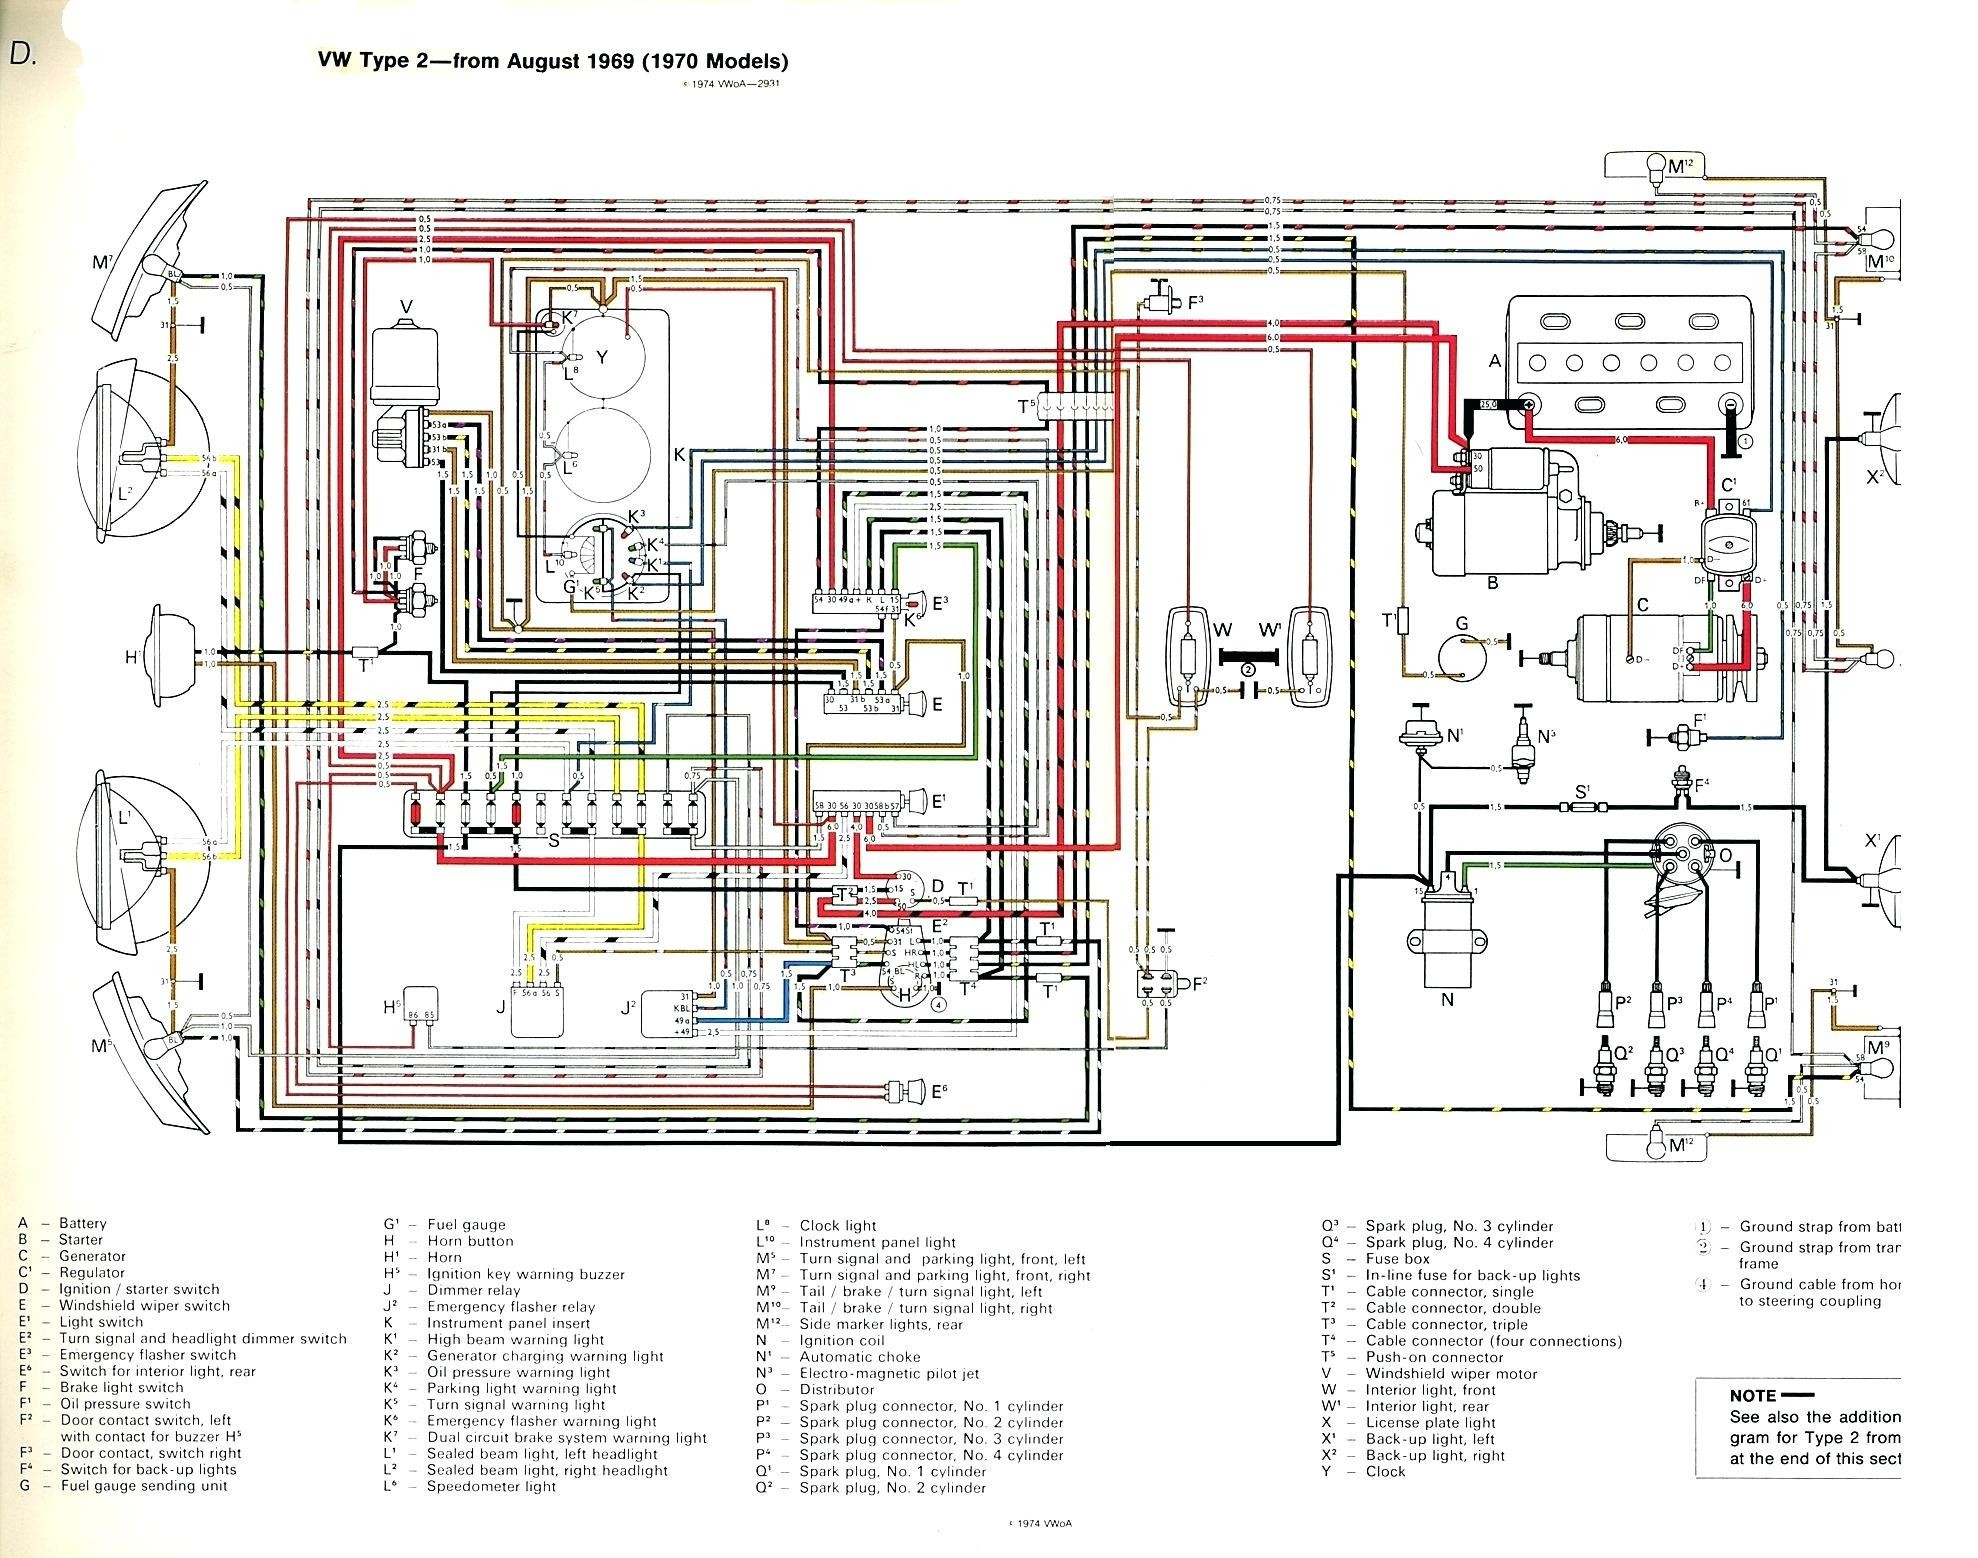 [DIAGRAM_1JK]  RG_9543] Dimmer Switch Wiring Diagram Get Free Image About Wiring Diagram  Download Diagram | 1966 Chevy Impala Wiper Wiring |  | Pimpaps Wned Estep Scata Lexor Indi Exmet Inst Piot Cali Xeira  Mohammedshrine Librar Wiring 101